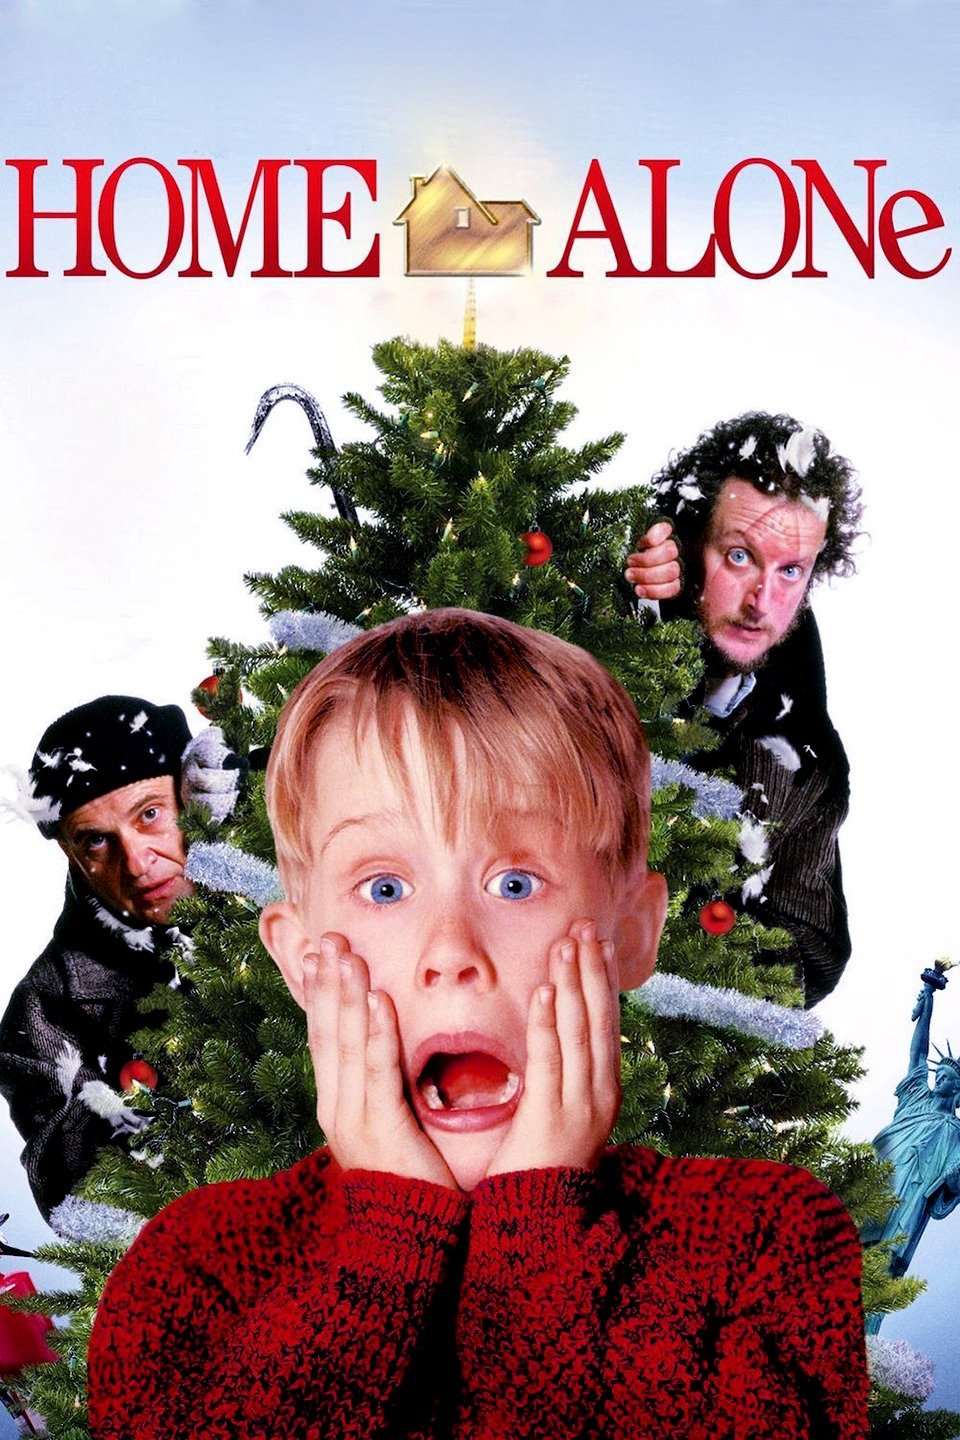 Home Alone - Who would have thought the idea of two bumbling burglars terrorizing a child would be full of Christmas cheer? This laugh out loud (and totally quotable) movie is one of my daughter's favorites. And for good reason. So grab a slice of pizza or serve yourself a supersized Sundae and laugh til your sides are sore. Kids, big and small, will love it.